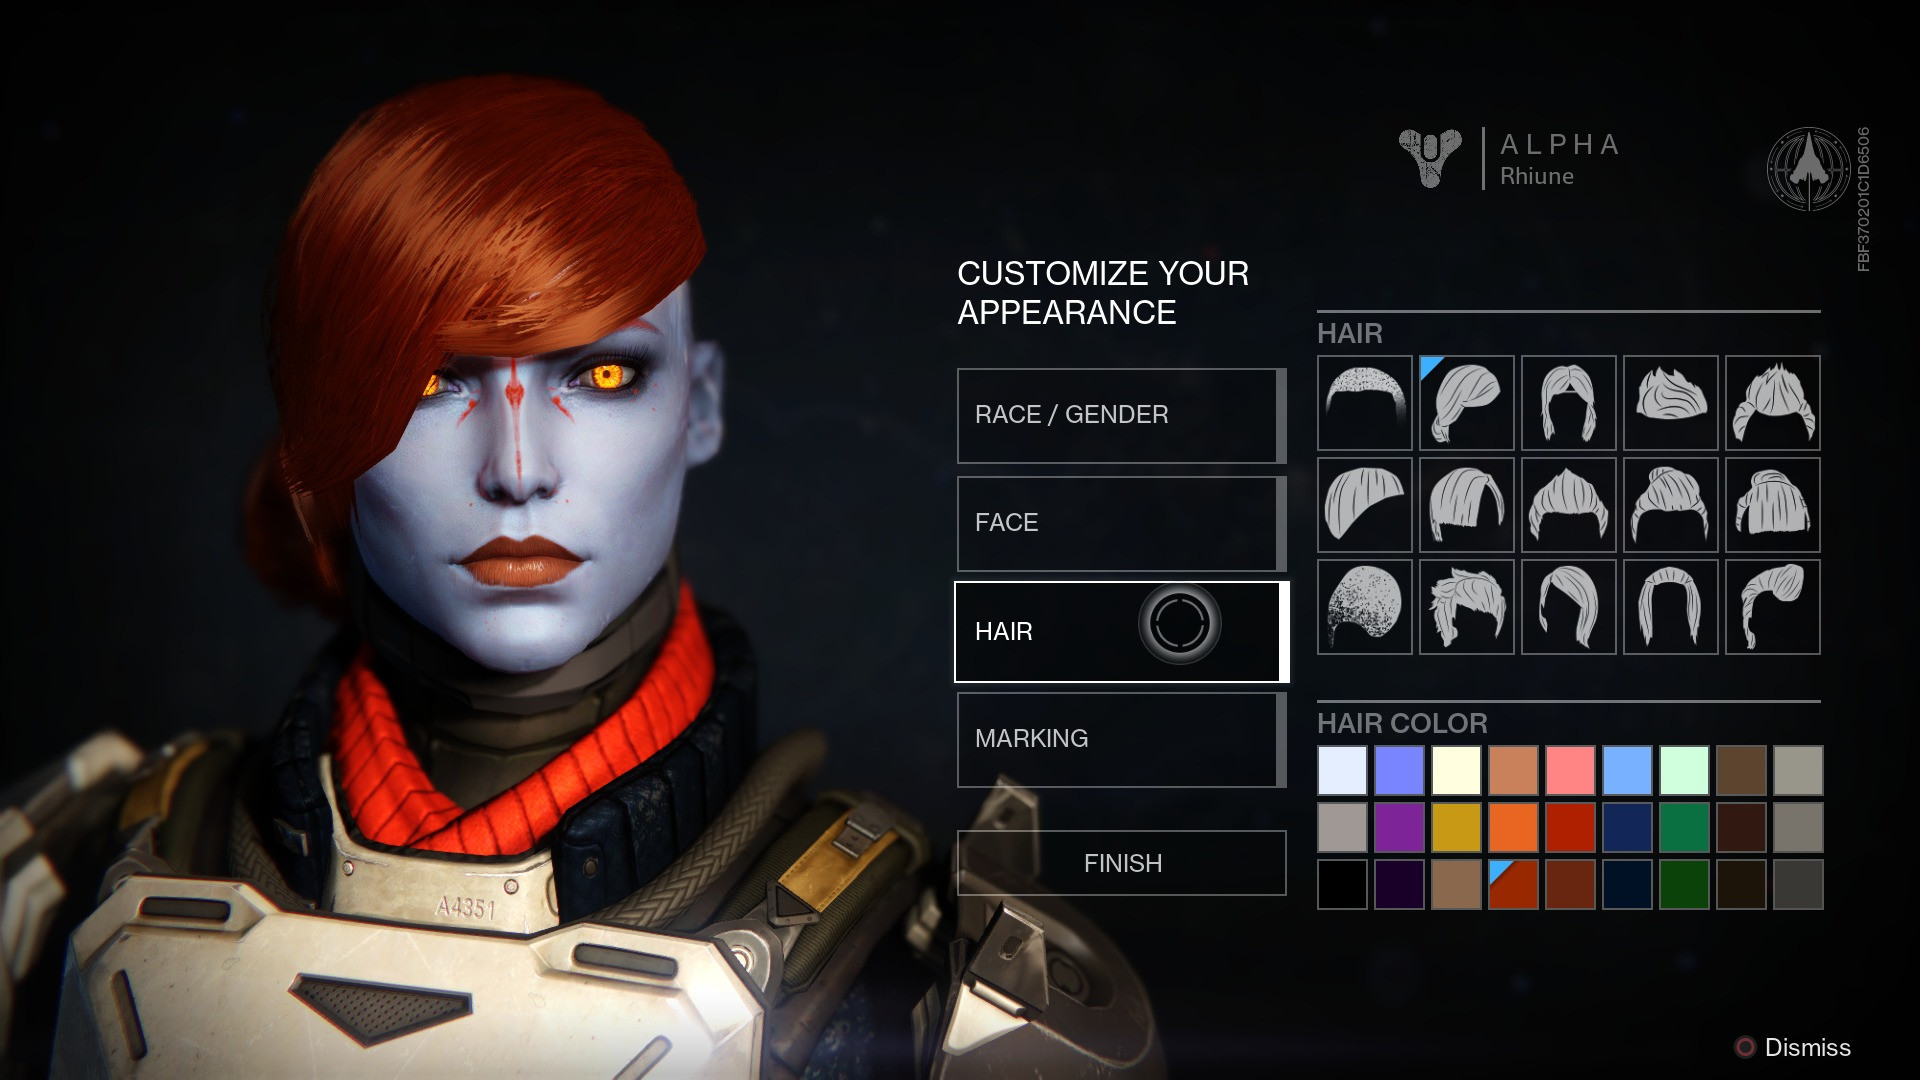 Destiny 2 Female Hairstyles  I bet we won t see a lot of female Awoken DestinyCharacters